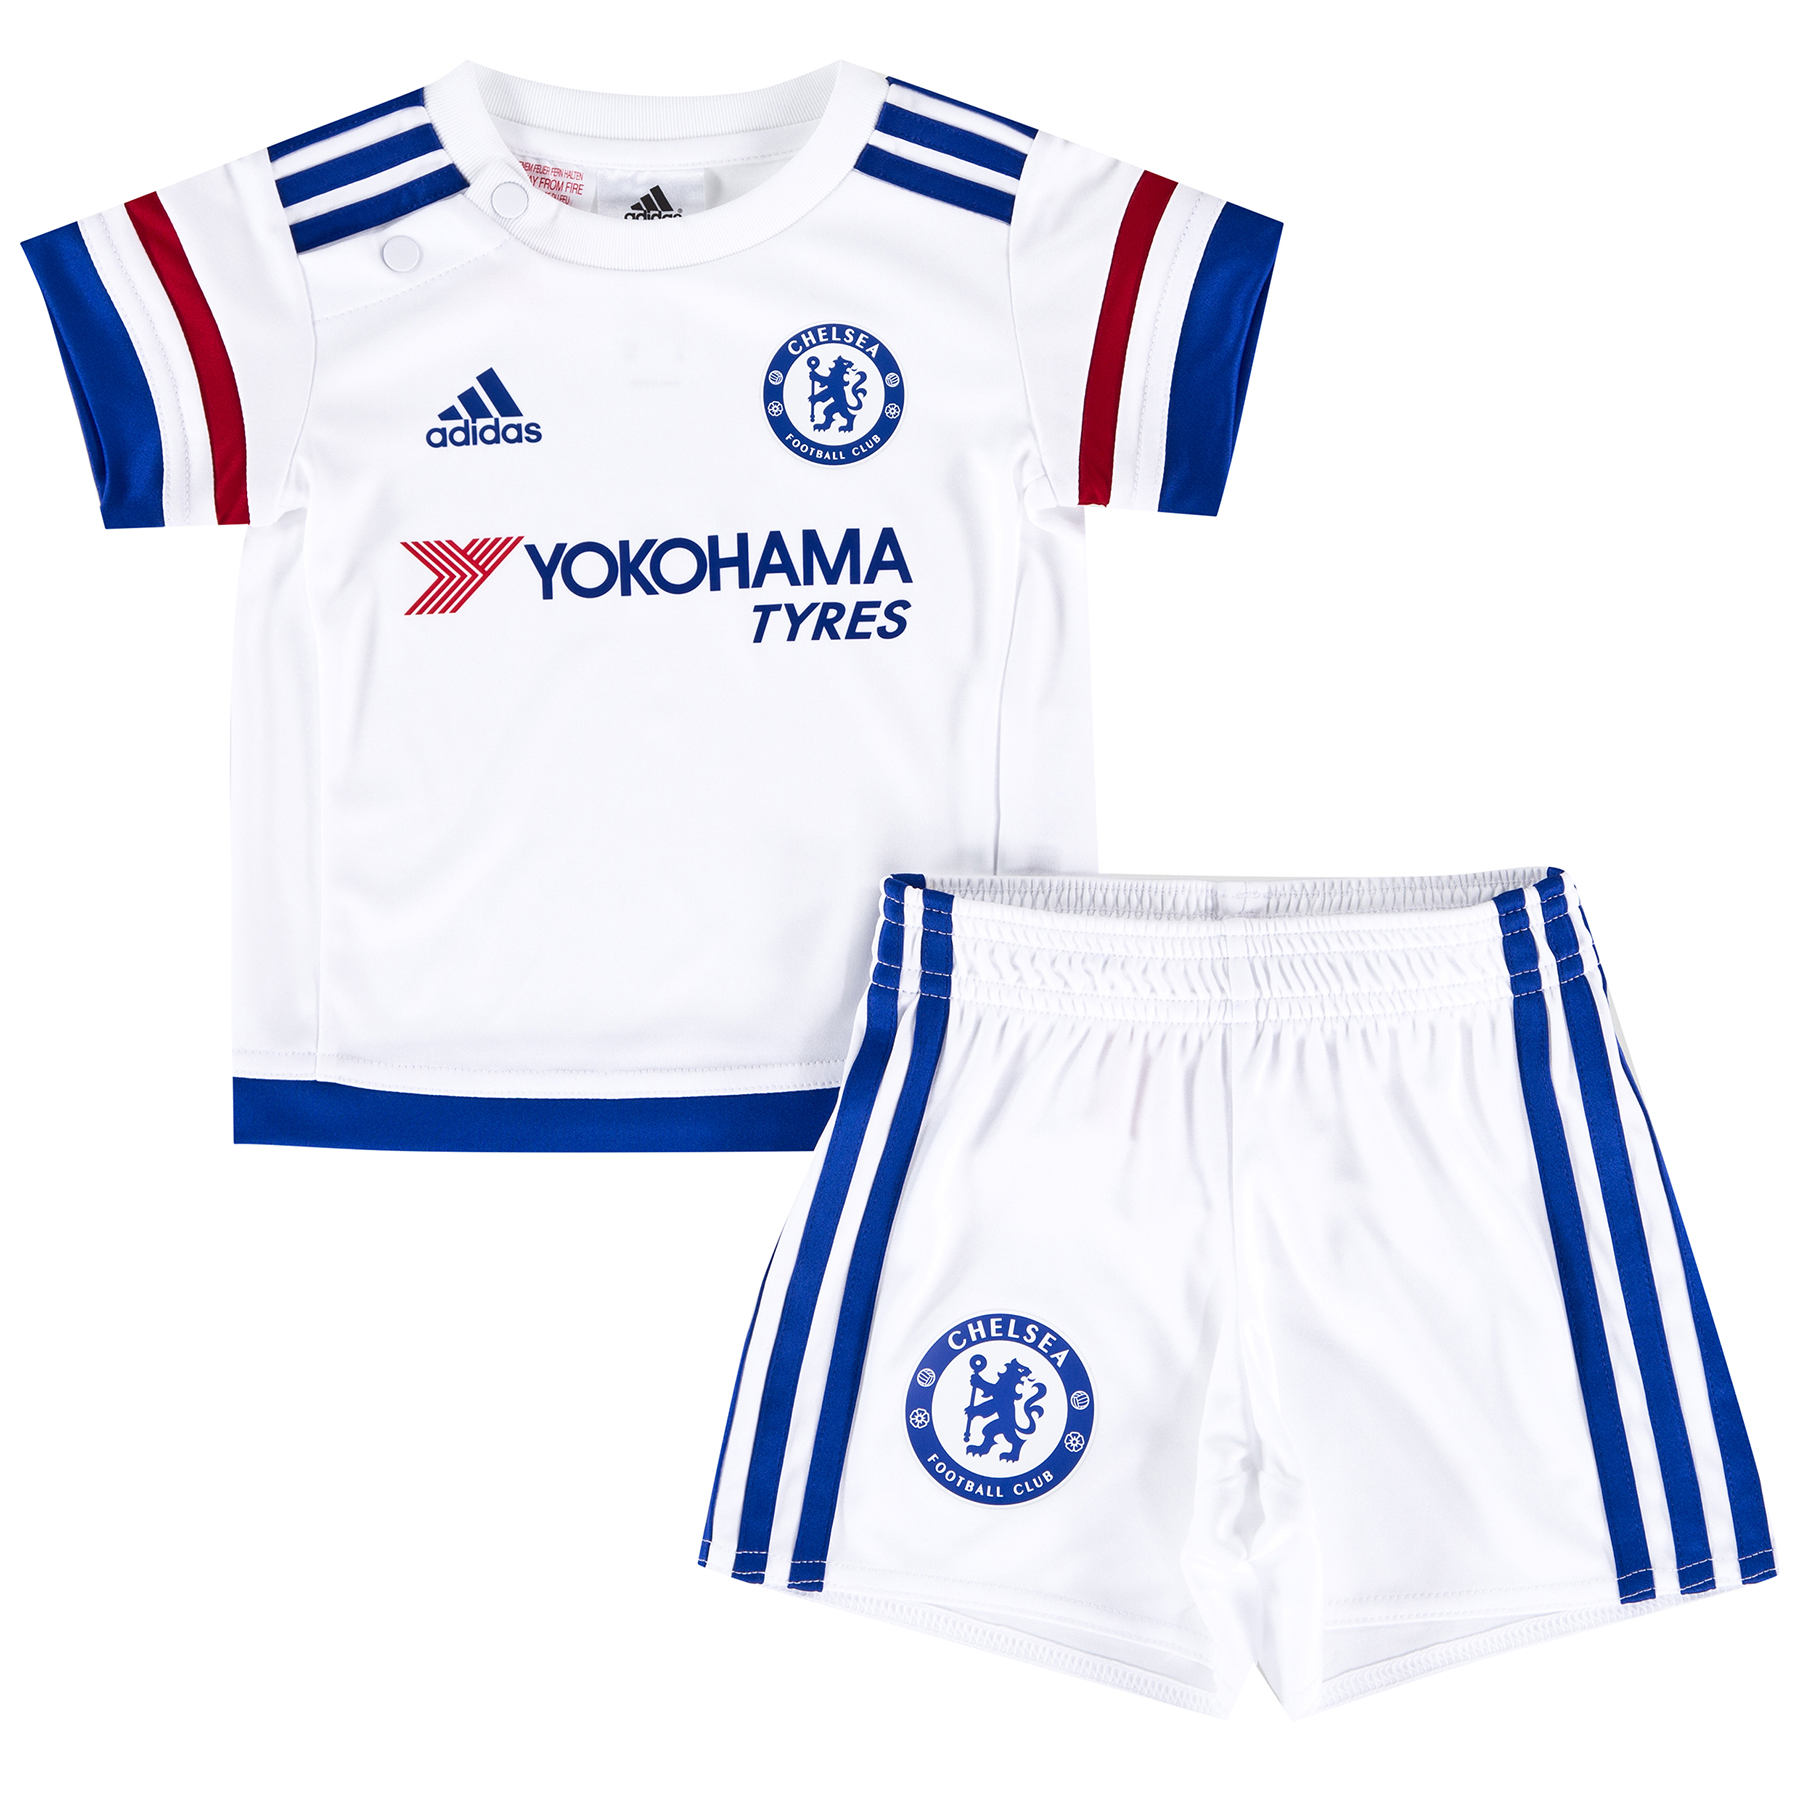 Chelsea  Away Baby Kit 2015/16 Even the youngest of fans can show their support for their favourite club with the new Chelsea Away Baby Kit for the 2015/16 season. The CFC Away KitThe Away Kit mirrors the colour story of the Home Kit in an unseen way: Red, White and Chelsea Blue stripes on the arms. The fingerprint label adds value and an authentic stor